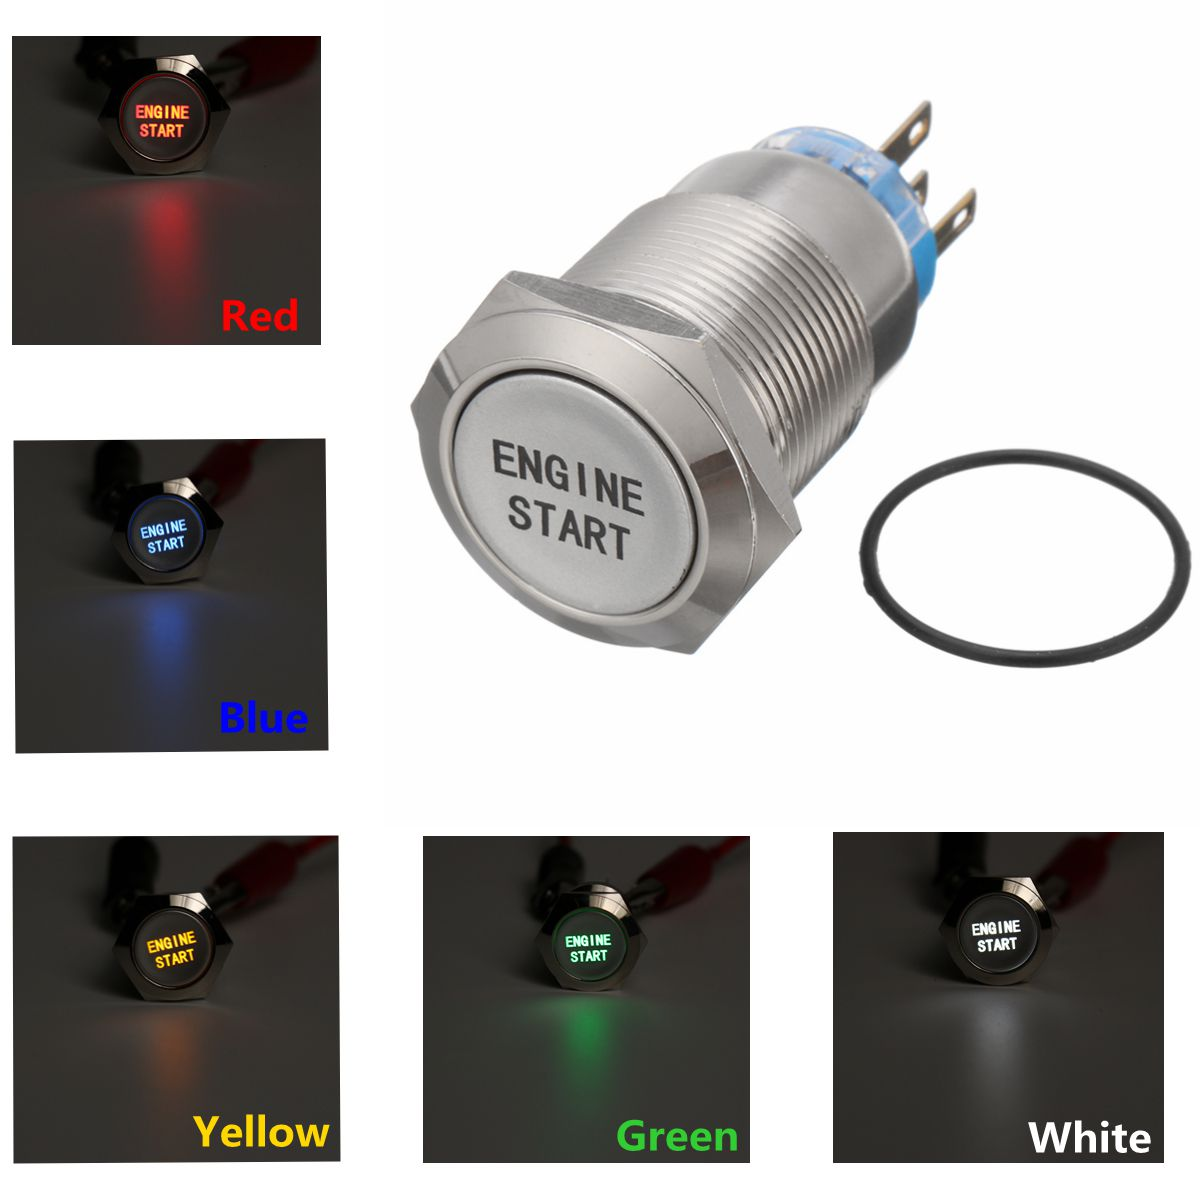 12V 19MM Waterproof Car AUTO Metal Momentary Engine Start Push Button Switch LED